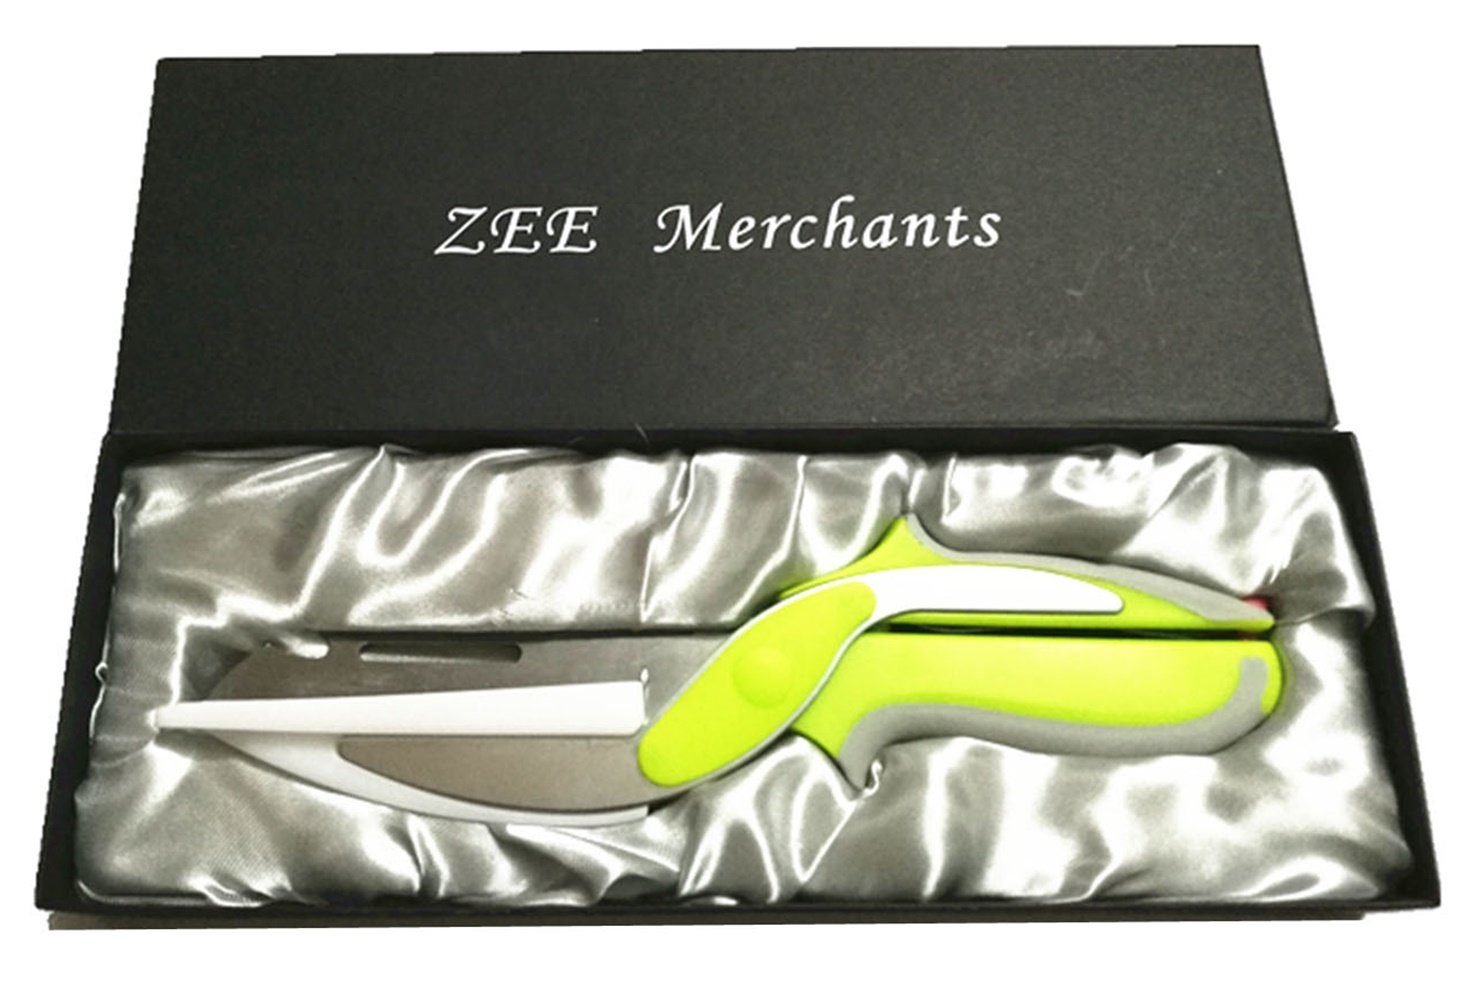 BEST MULTIPURPOSE Kitchen SHEARS With Cutting Board, POULTRY SHEARS, Vegetable Peeler, Fish Scaler, And Bone Cutter